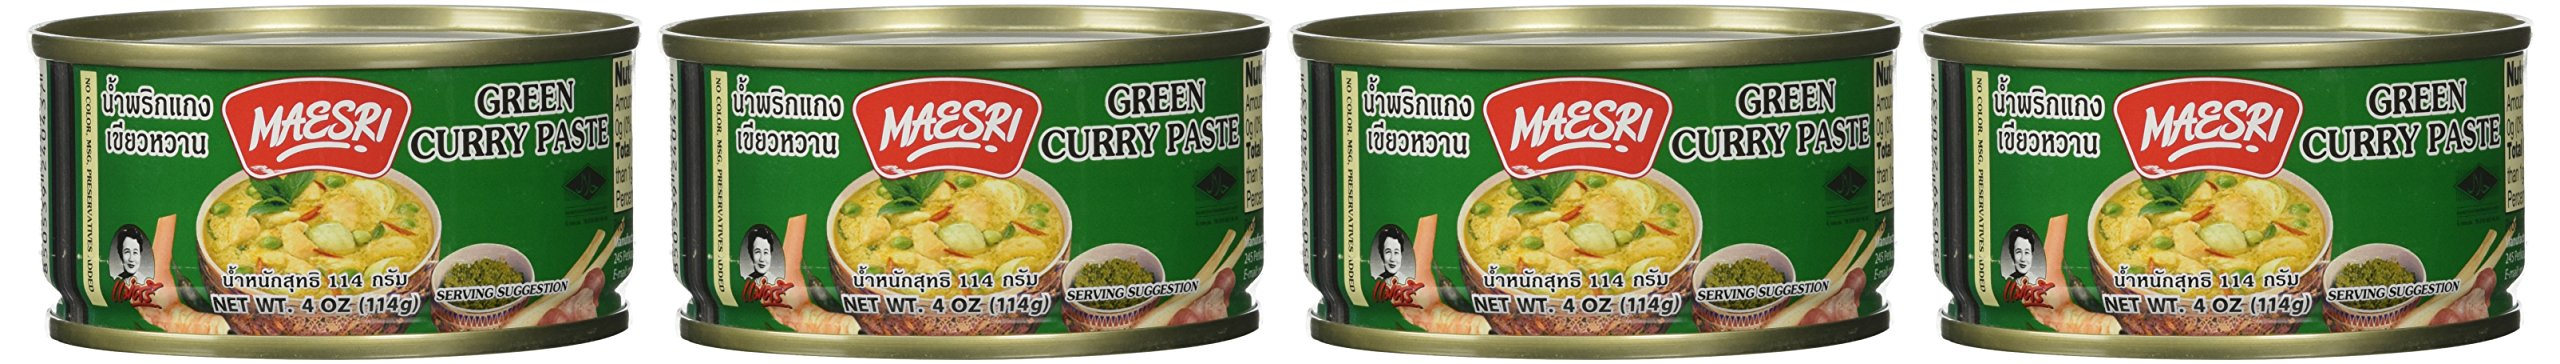 Maesri Thai Green Curry Paste - 4 Oz (Pack of 4)